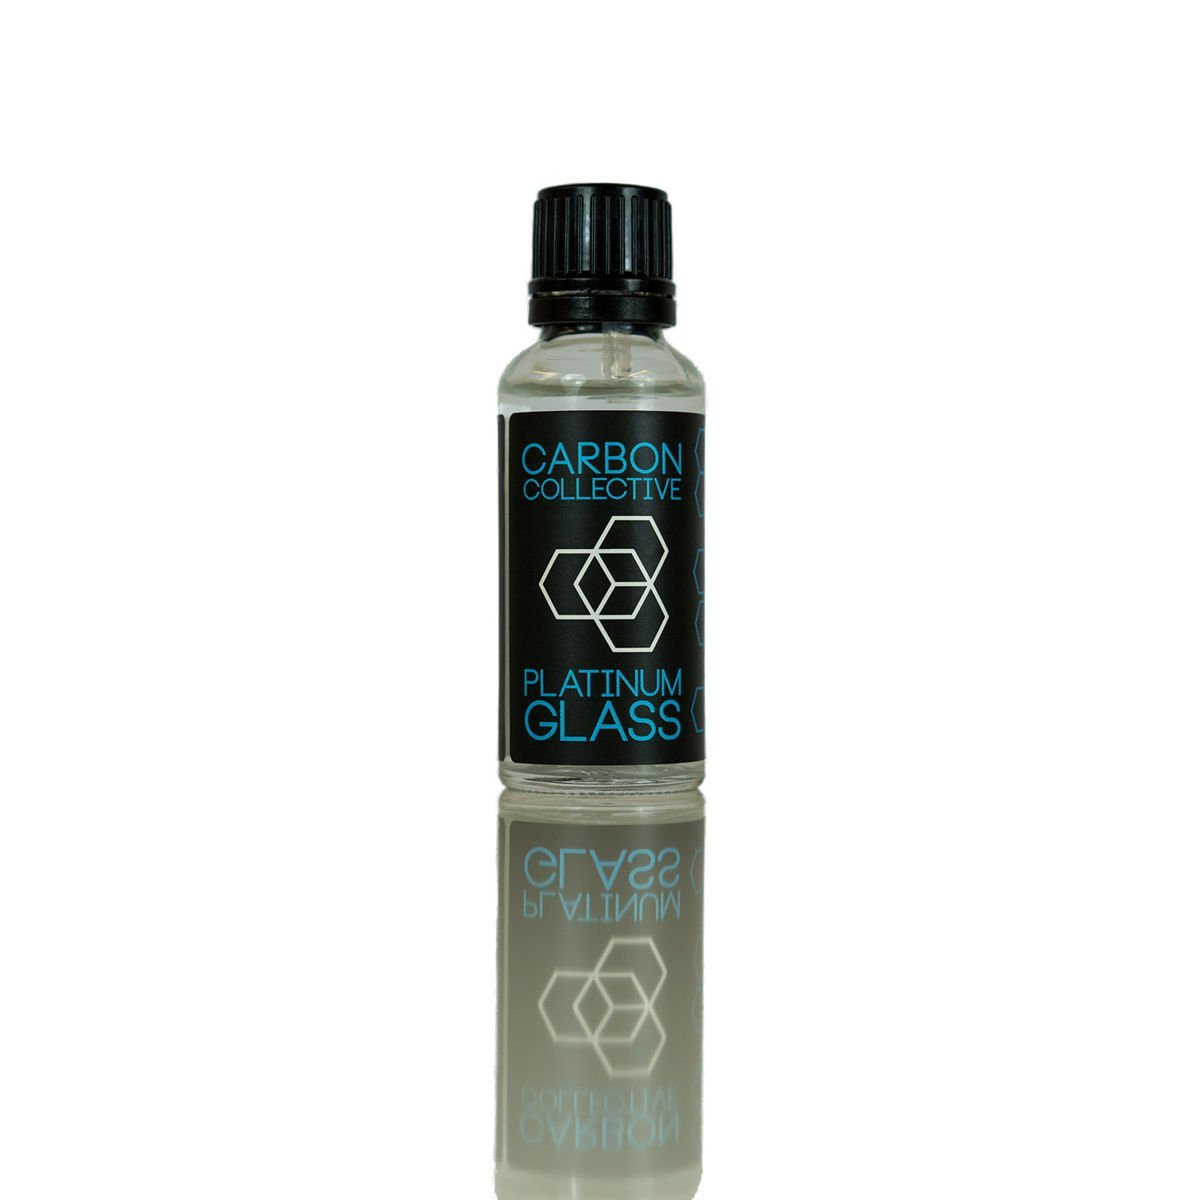 Carbon Collective Platinum Glass 30ml ~ Glass Sealant